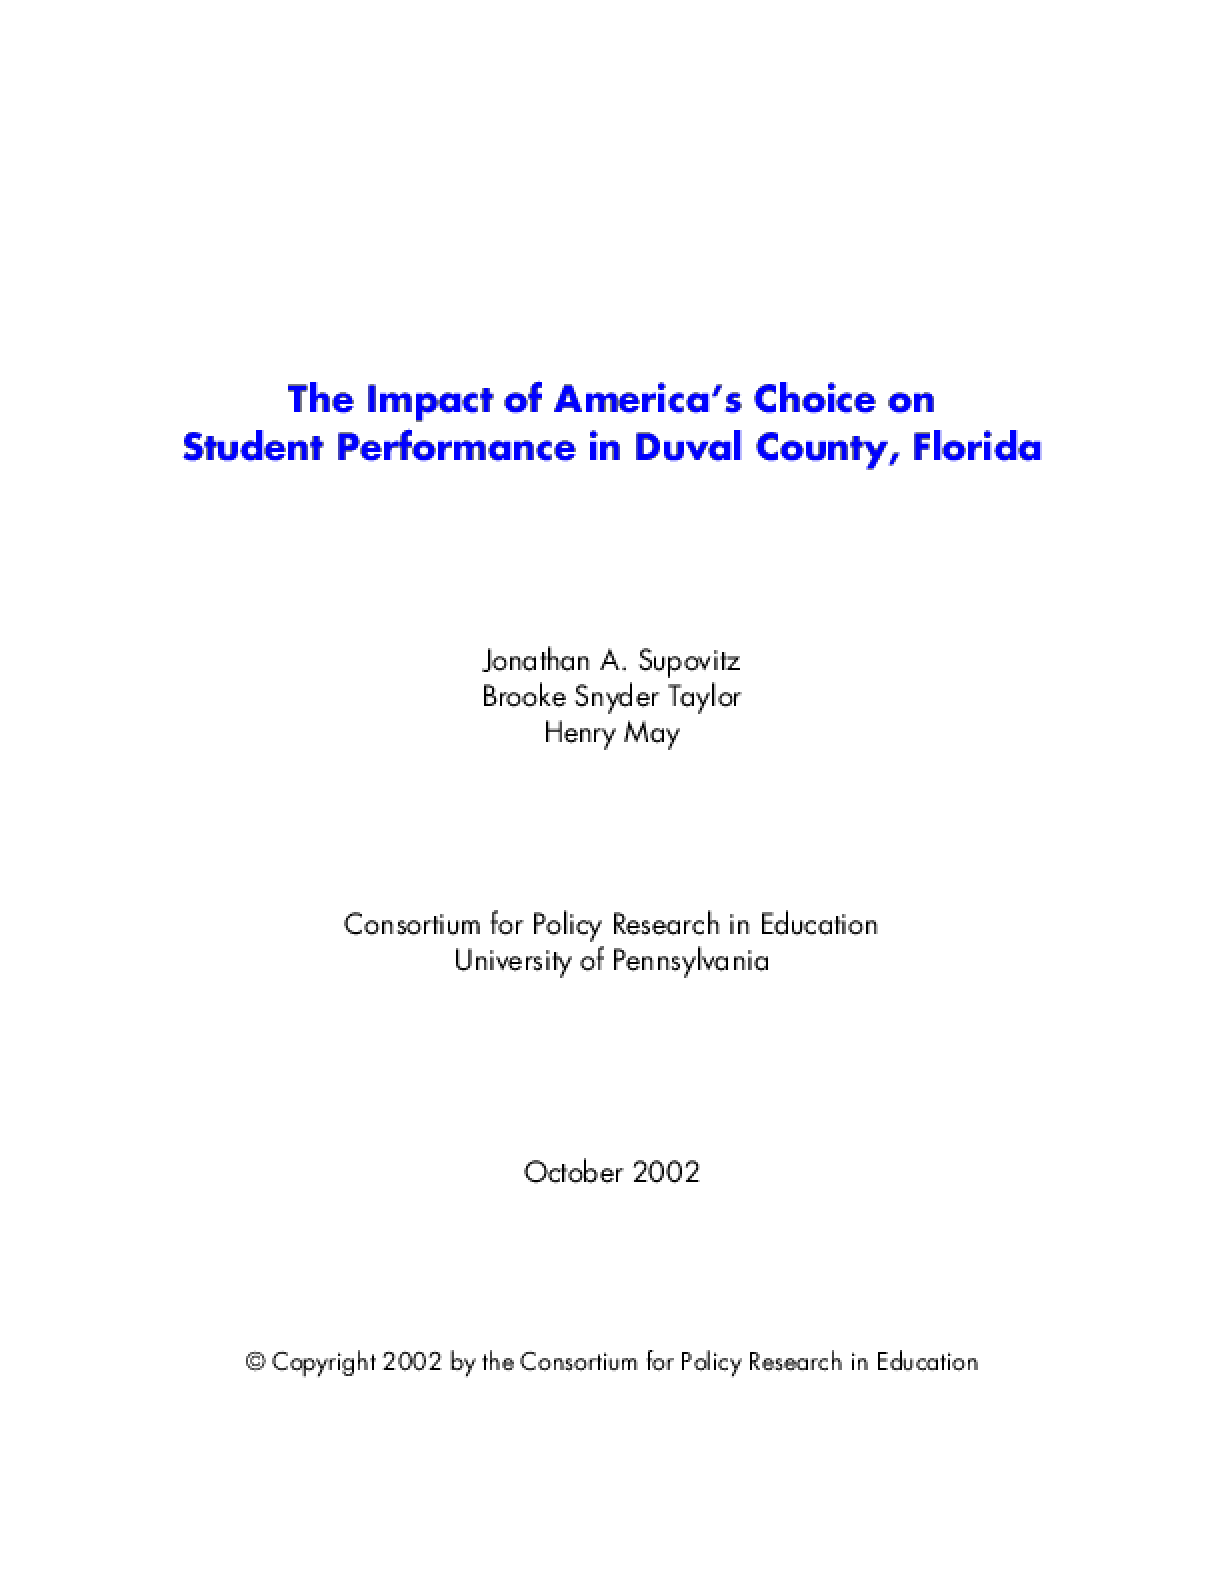 Impact of America's Choice on Student Performance in Duval County, Florida